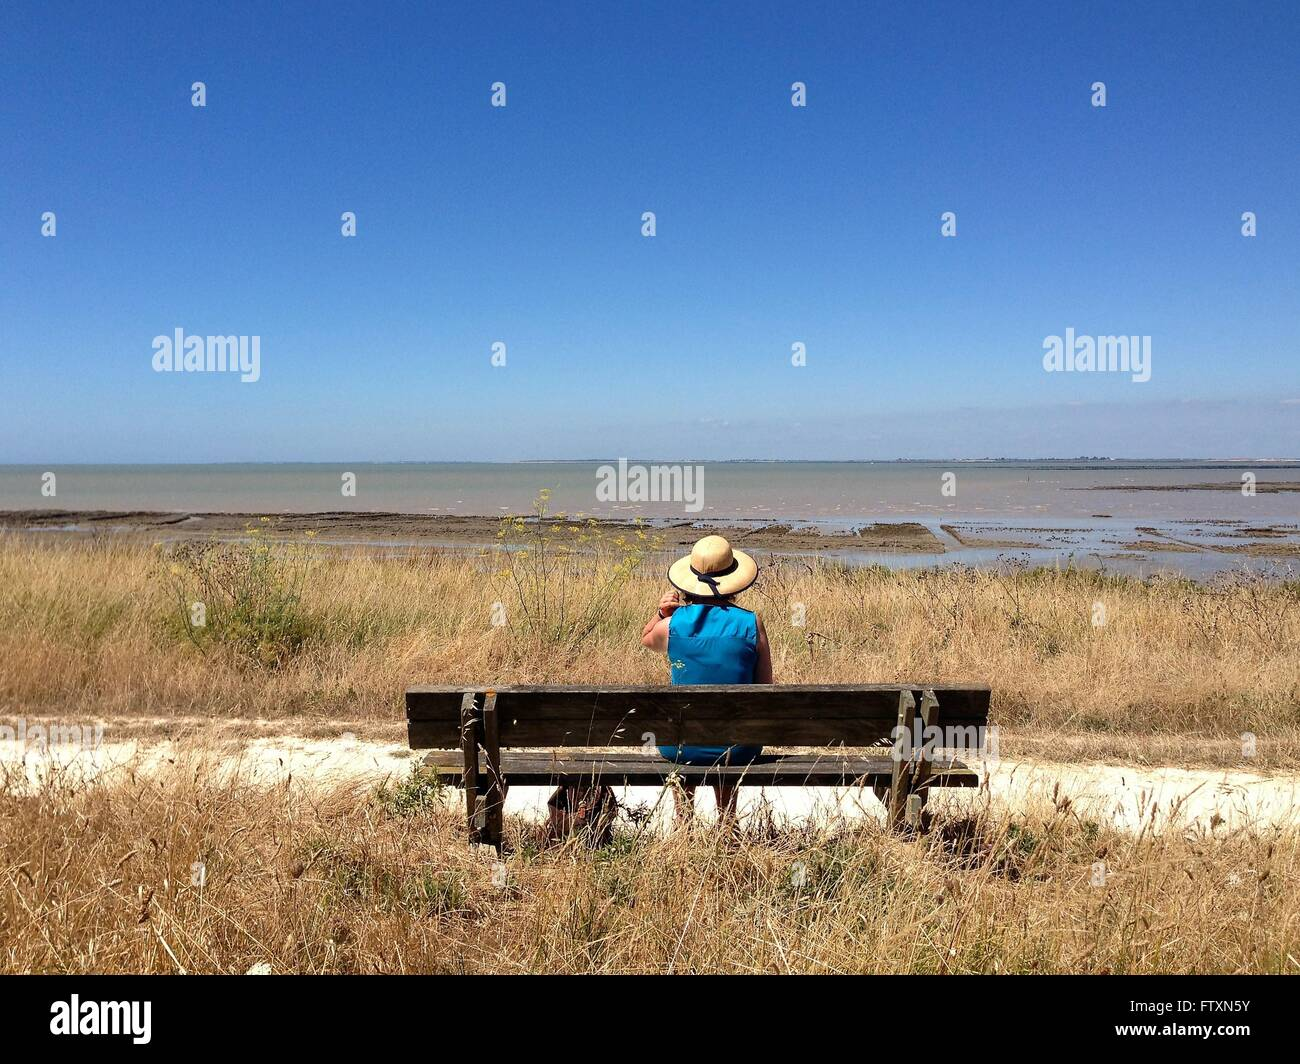 Mature woman sitting on bench by sea, Nieul-sur-Mer, La Rochelle, France - Stock Image